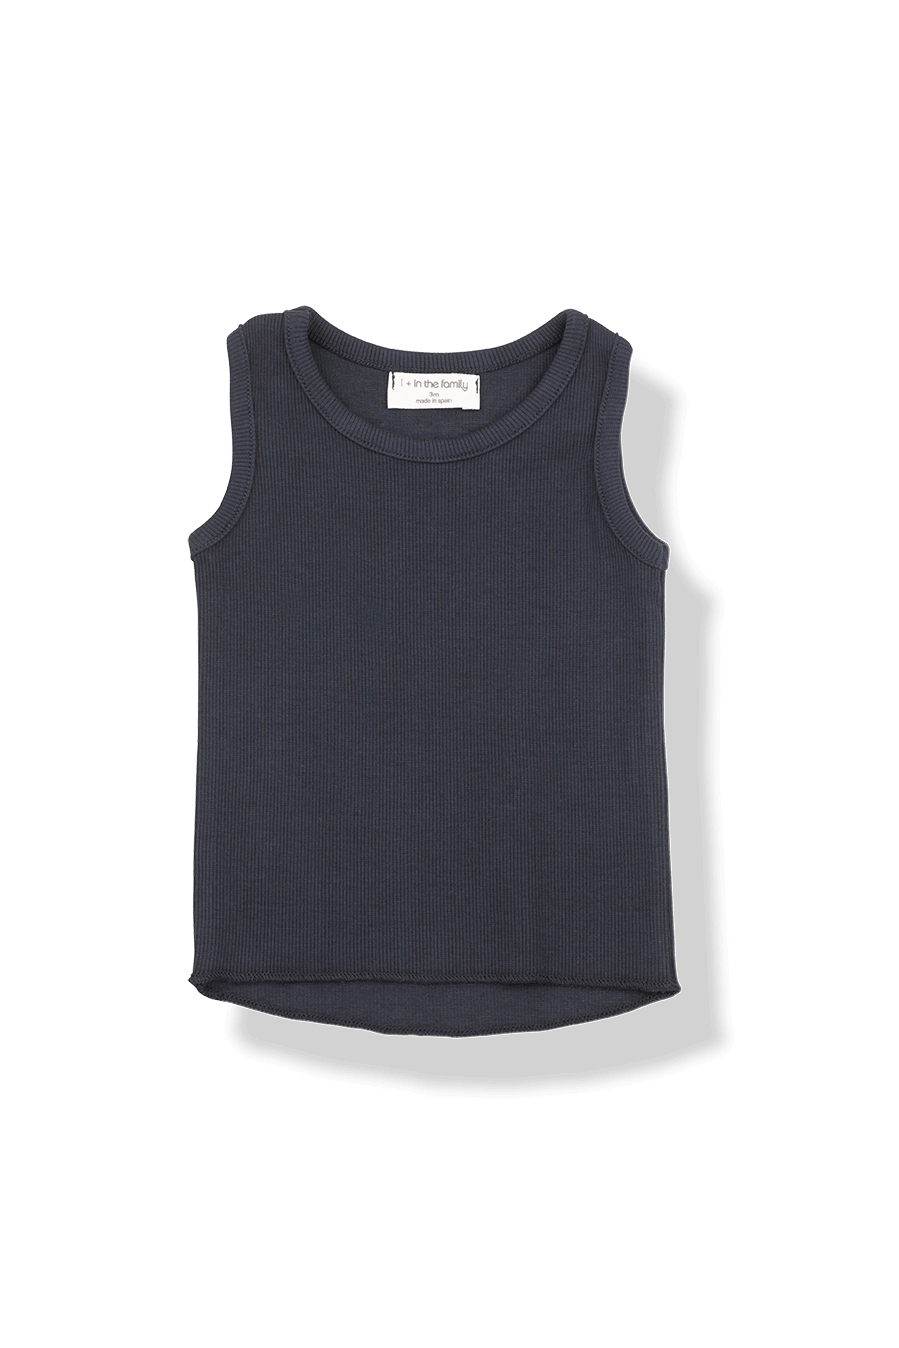 1+IN THE FAMILY NAVY RIBBED TANK TOP